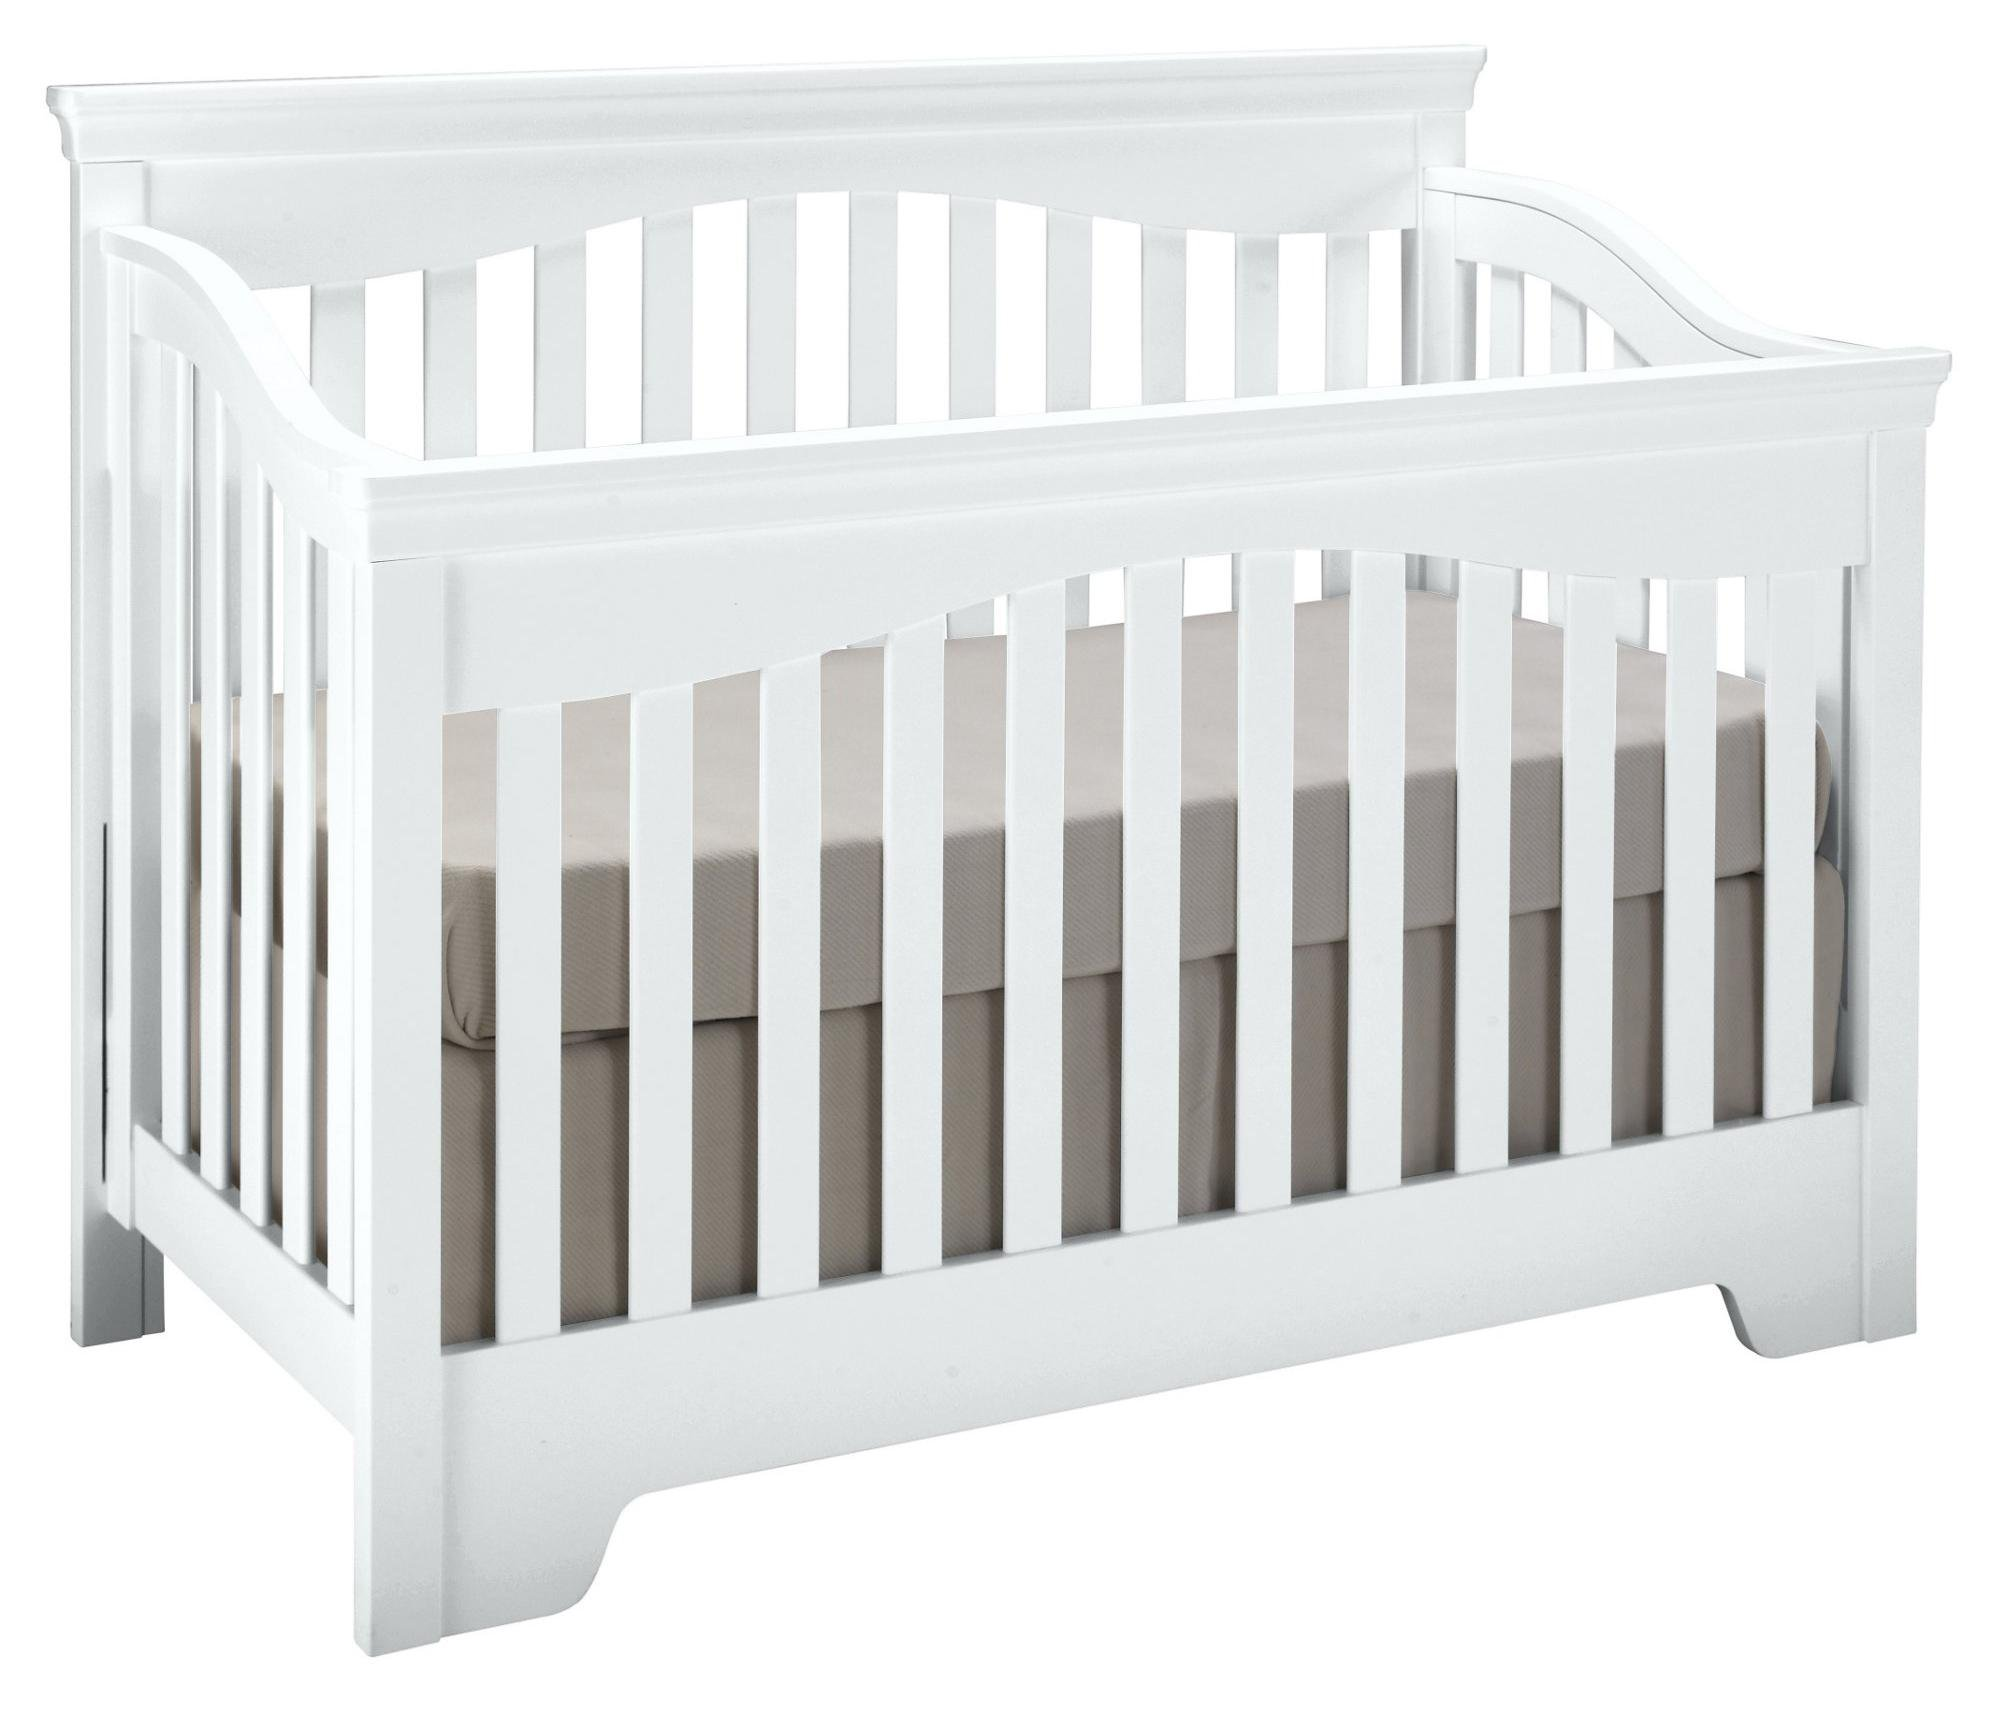 Young America Built to Grow Toddler Bed Kit Safety Rail w/Daybed Conversion Kit - White